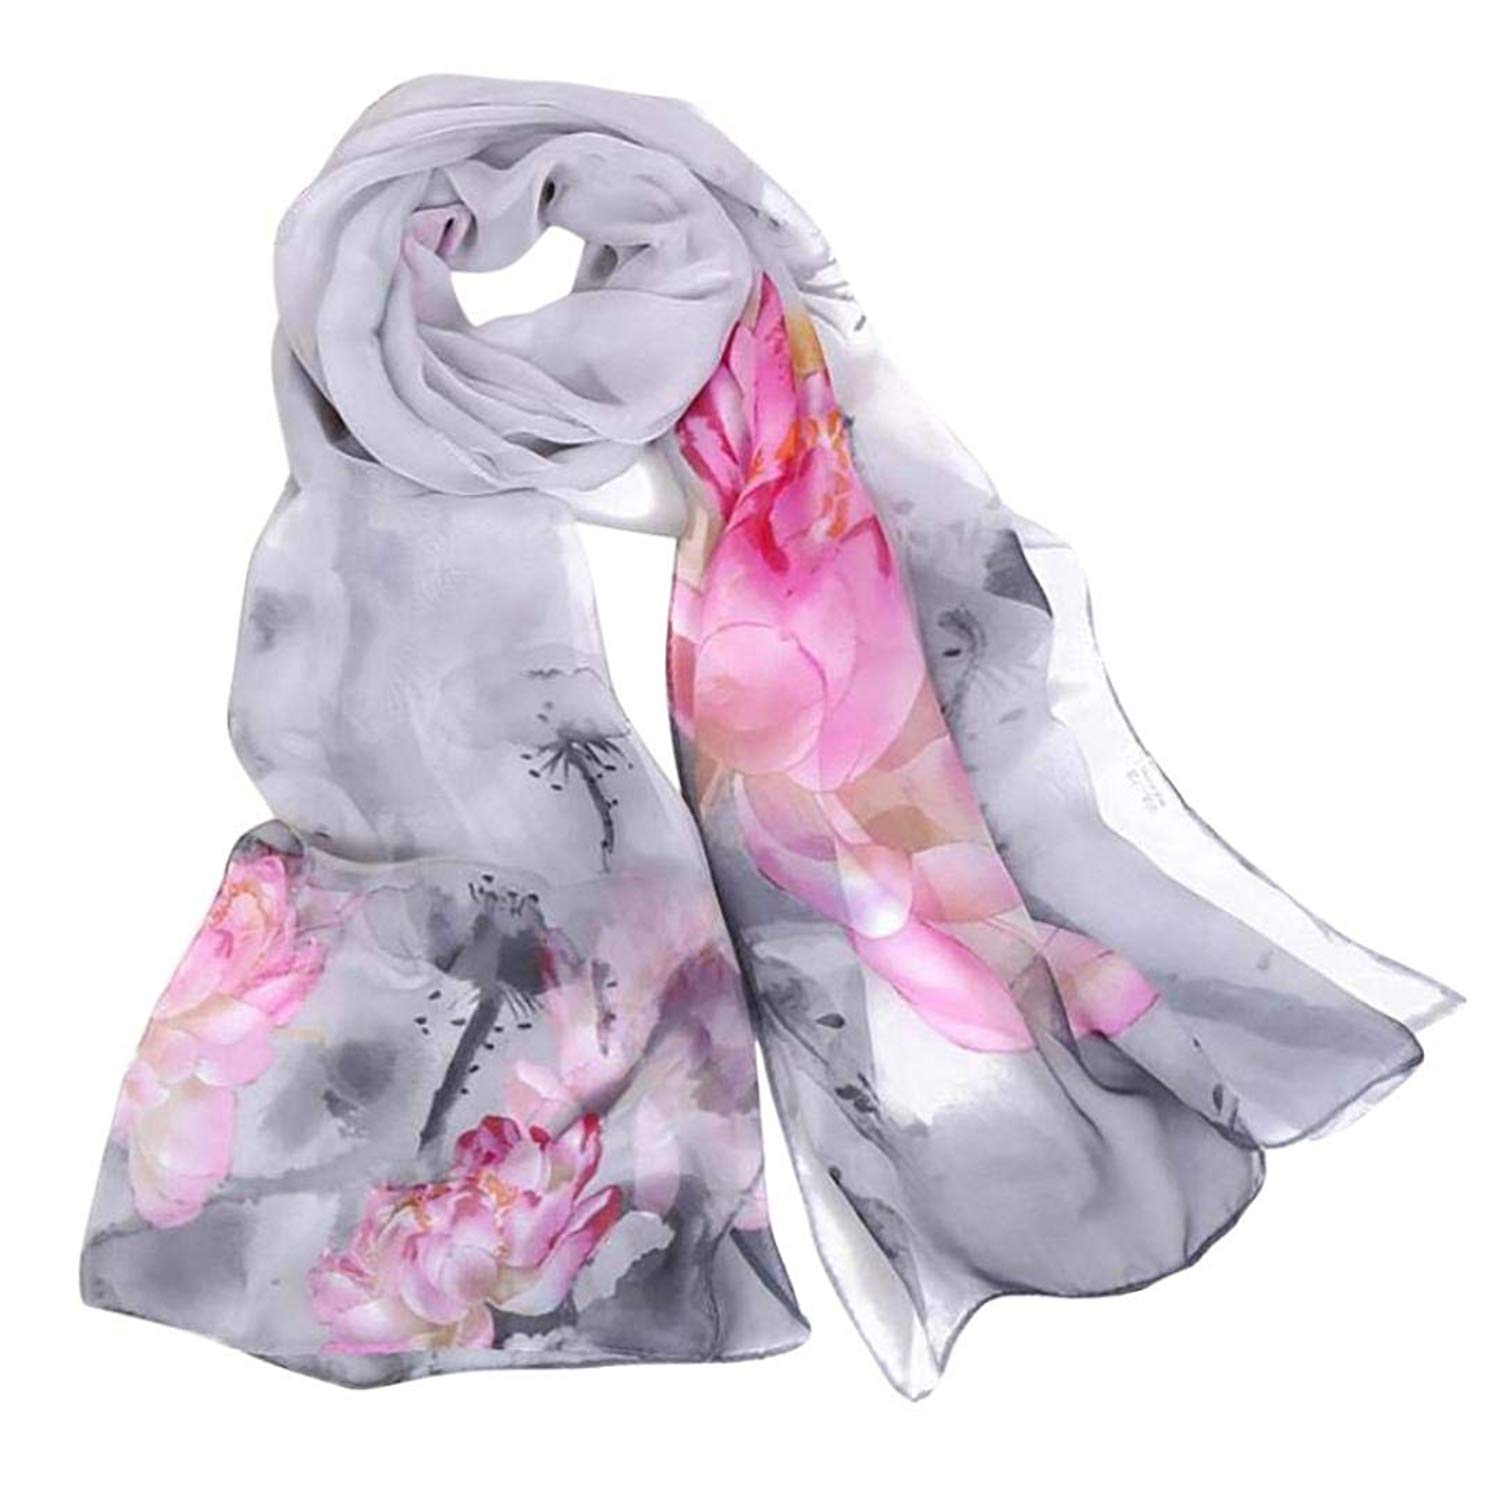 Women Scarves,Shybuy Ladies Fashion Large Flower Shawls Wraps Lightweight Lotus Pattern Scarf Headscarf or Neck